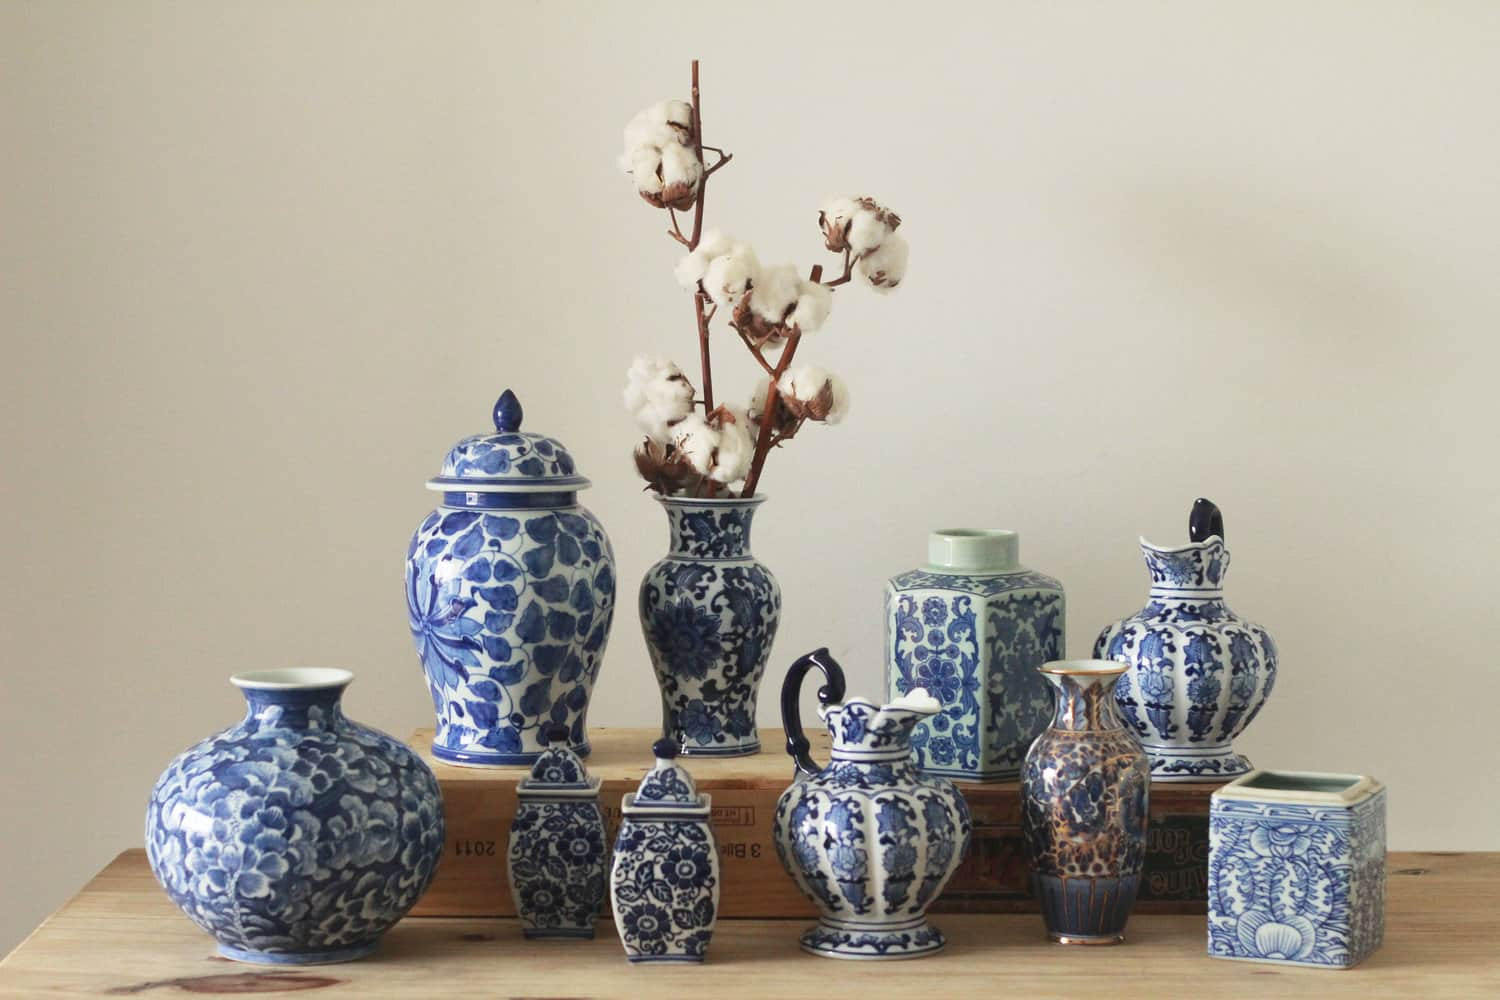 Display of various different types of porcelain such as flower vases and water jugs